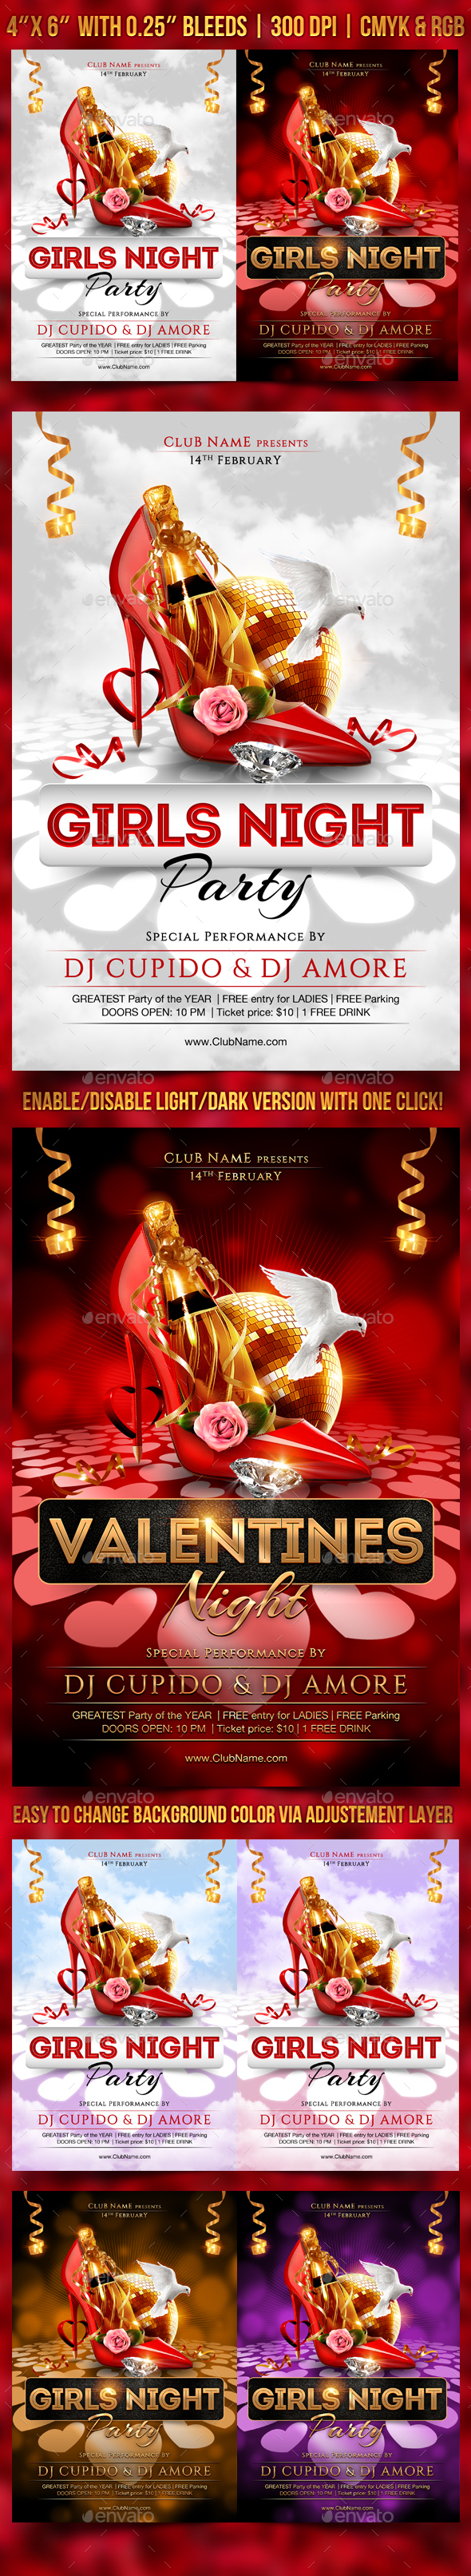 Girls Night Flyer Template - Clubs & Parties Events